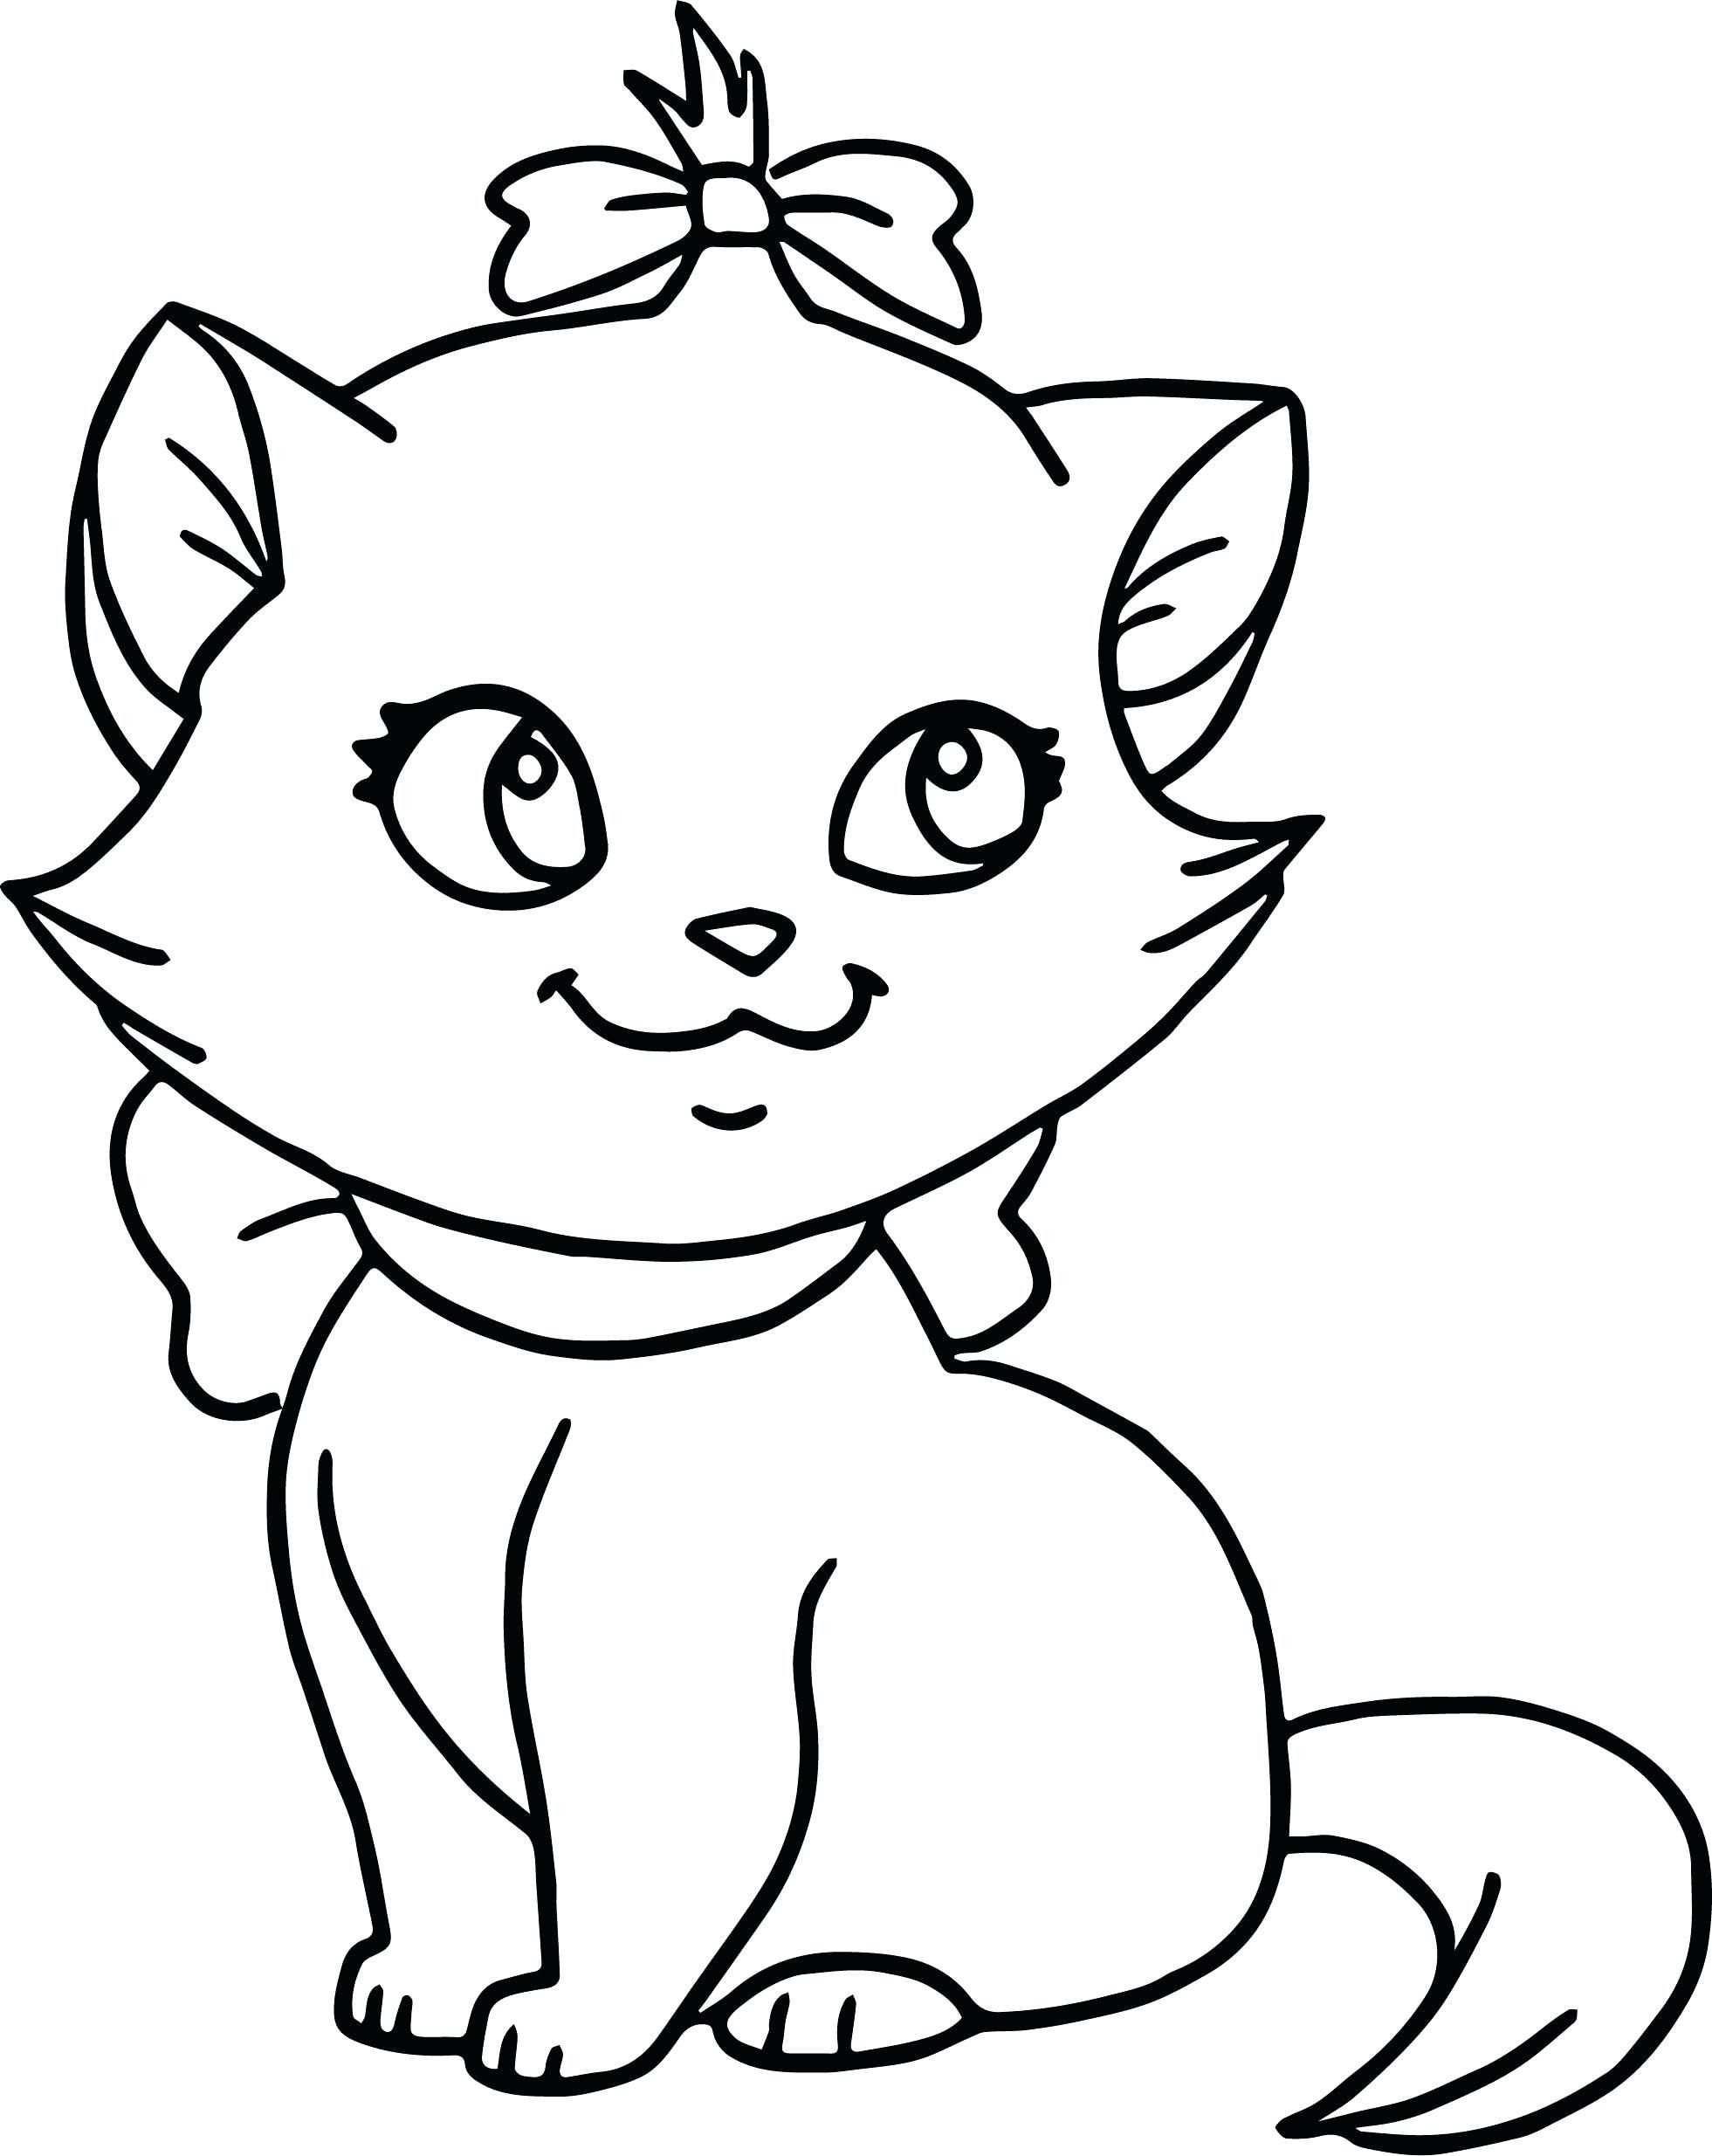 Black Cat Coloring Pages Funny Cat Coloring Pages Mastengcarfo In 2020 Kitten Coloring Book Cat Coloring Page Cat Coloring Book